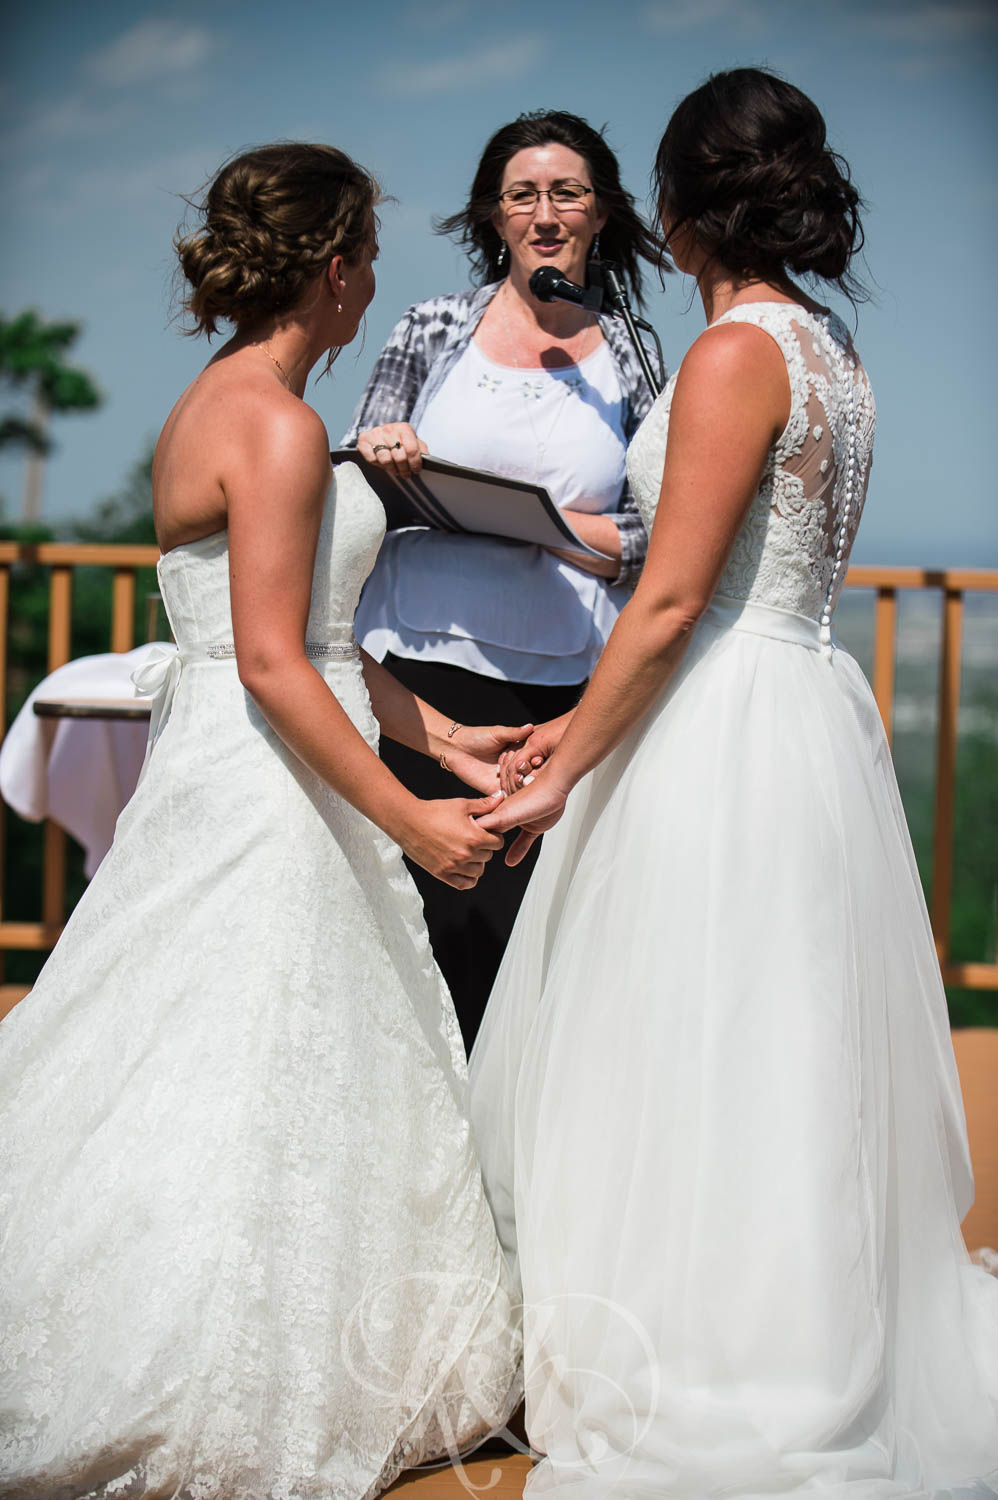 Britni & Paige - LGBT Minnesota Wedding Photography - Spirit Mountain - RKH Images  (21 of 32).jpg